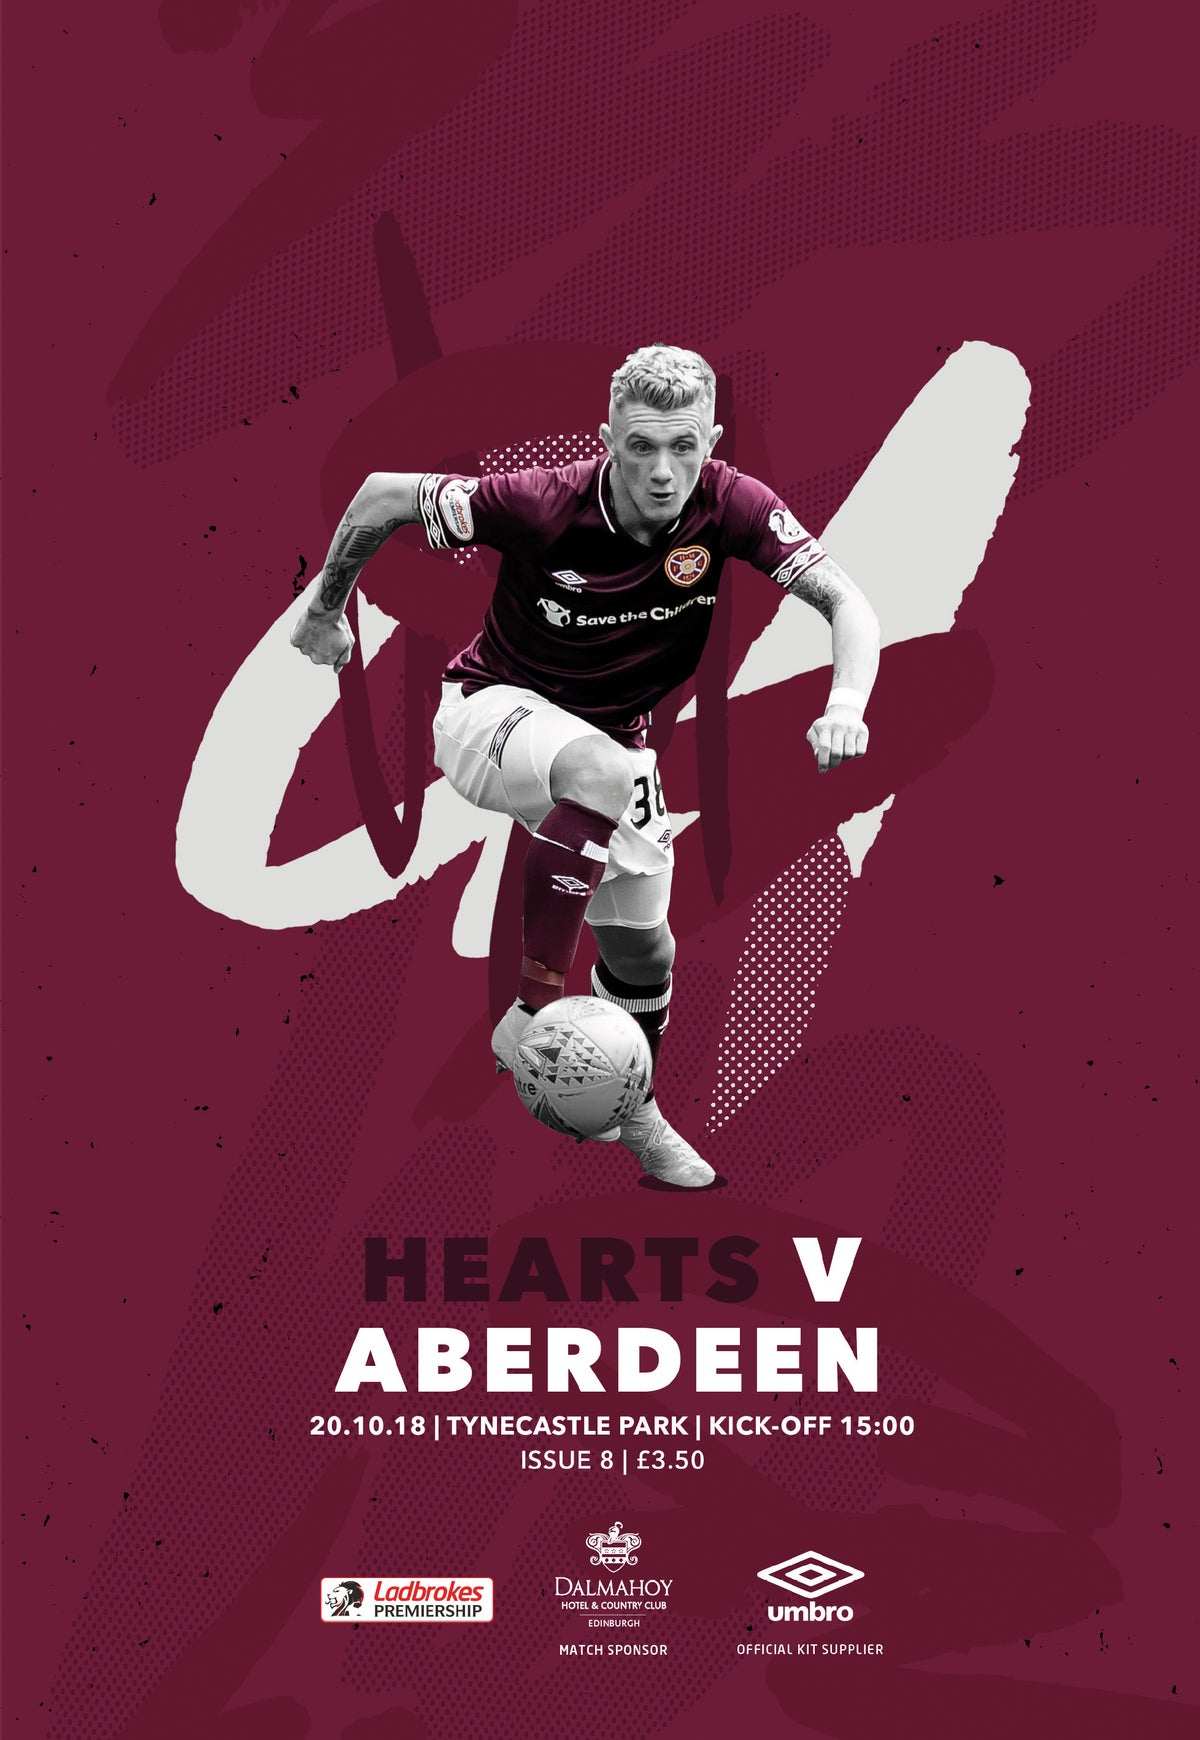 Image of Hearts v Aberdeen, 20th October 2018